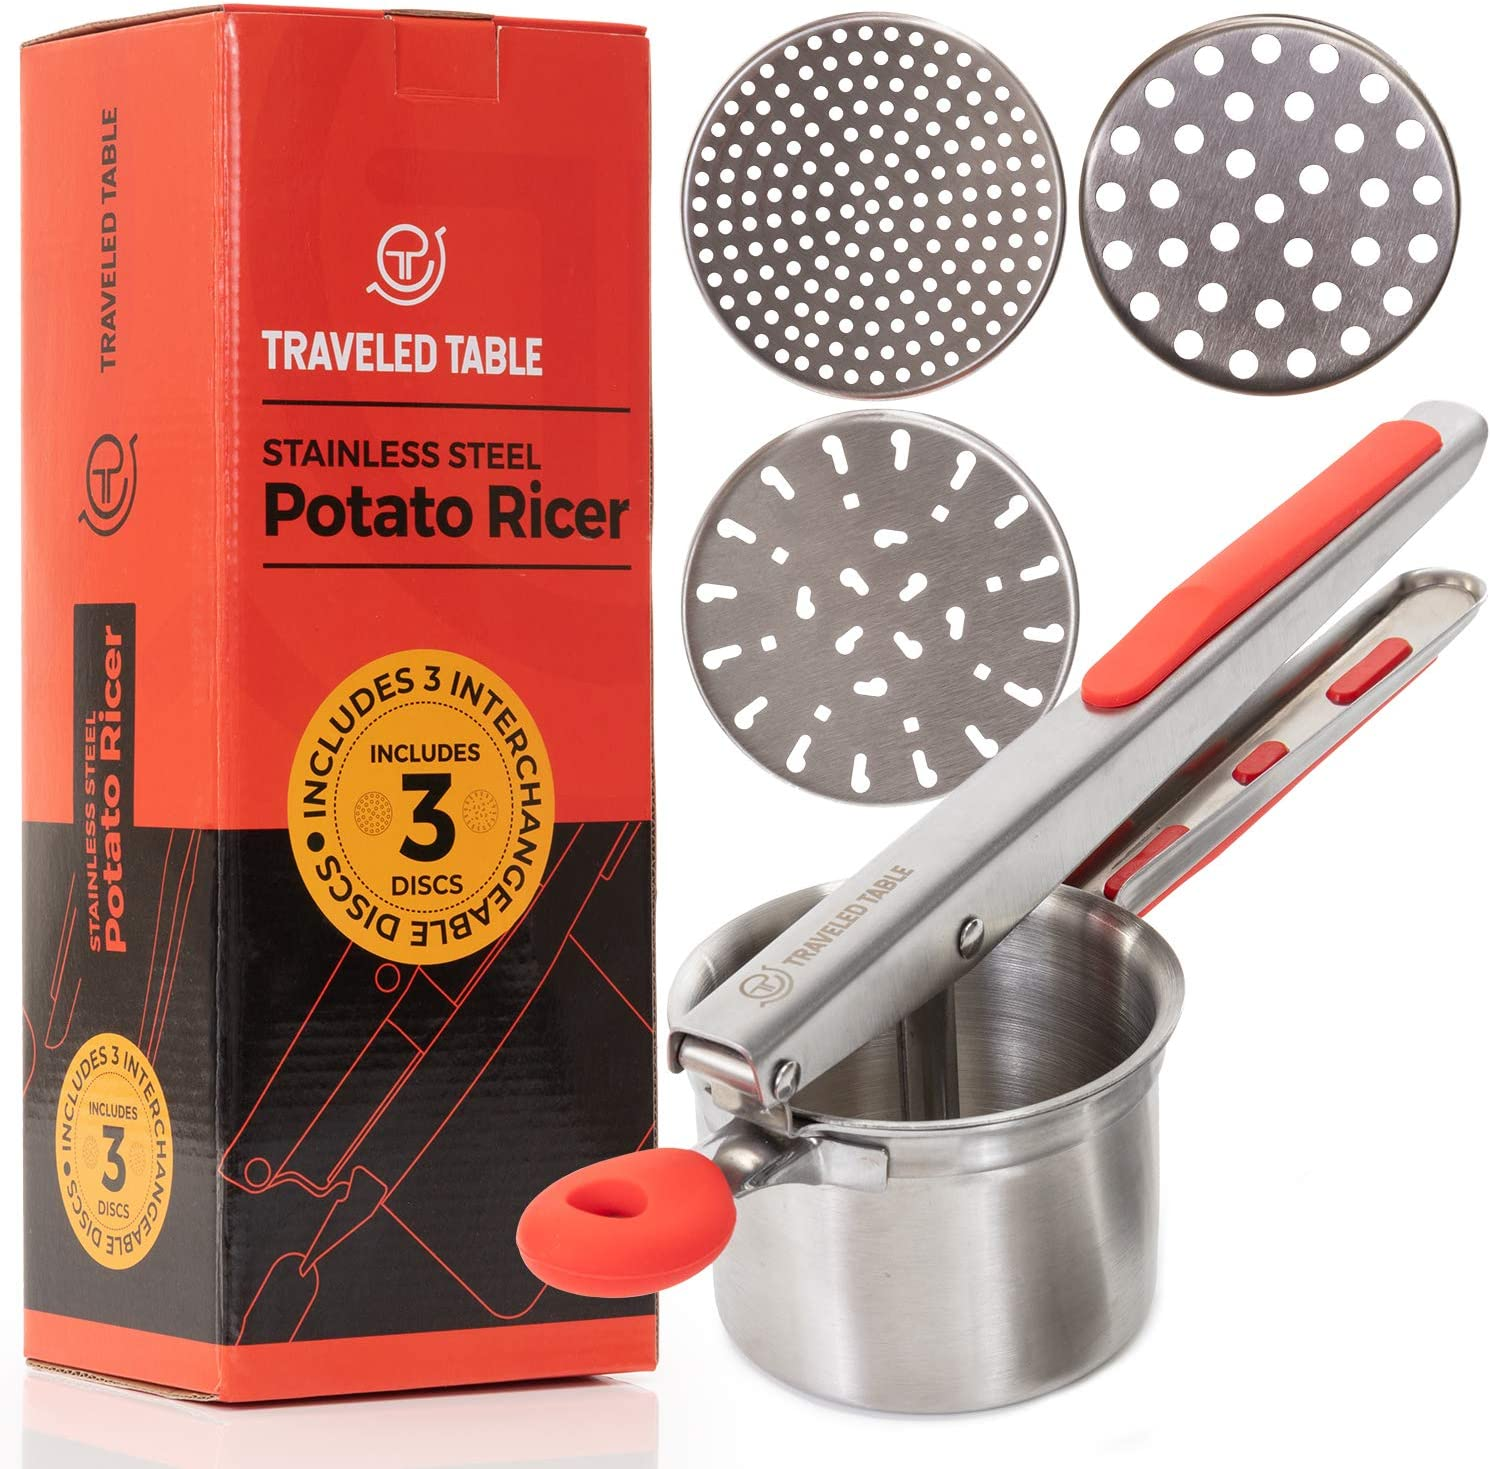 Potato Ricer - Stainless Steel Press for Mashed Potatoes - Best Kitchen Tool for Perfect Mashed Potato, Spaetzle, Cauliflower and Handmade Baby Food